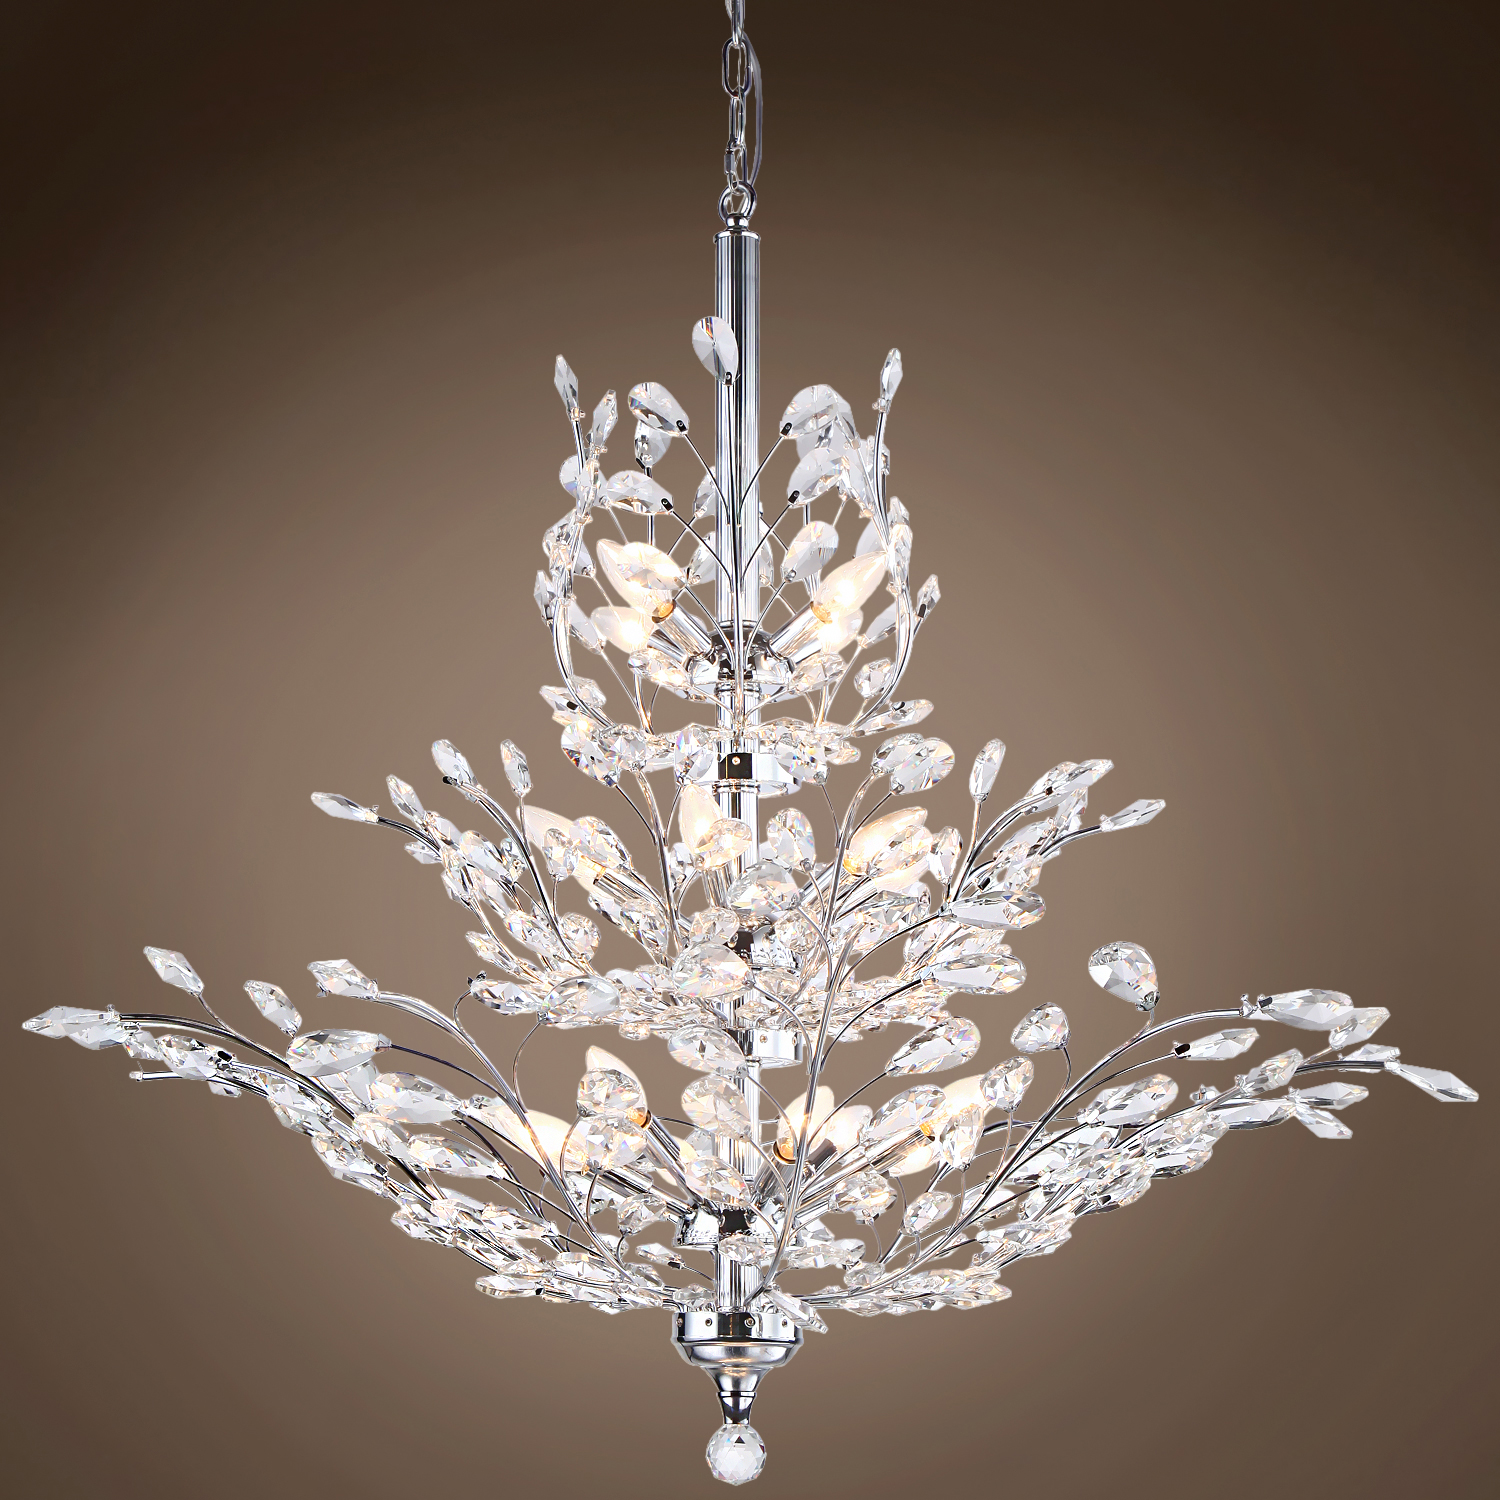 Joshua Marshal 700109 Branch Of Light 13 Light Chrome